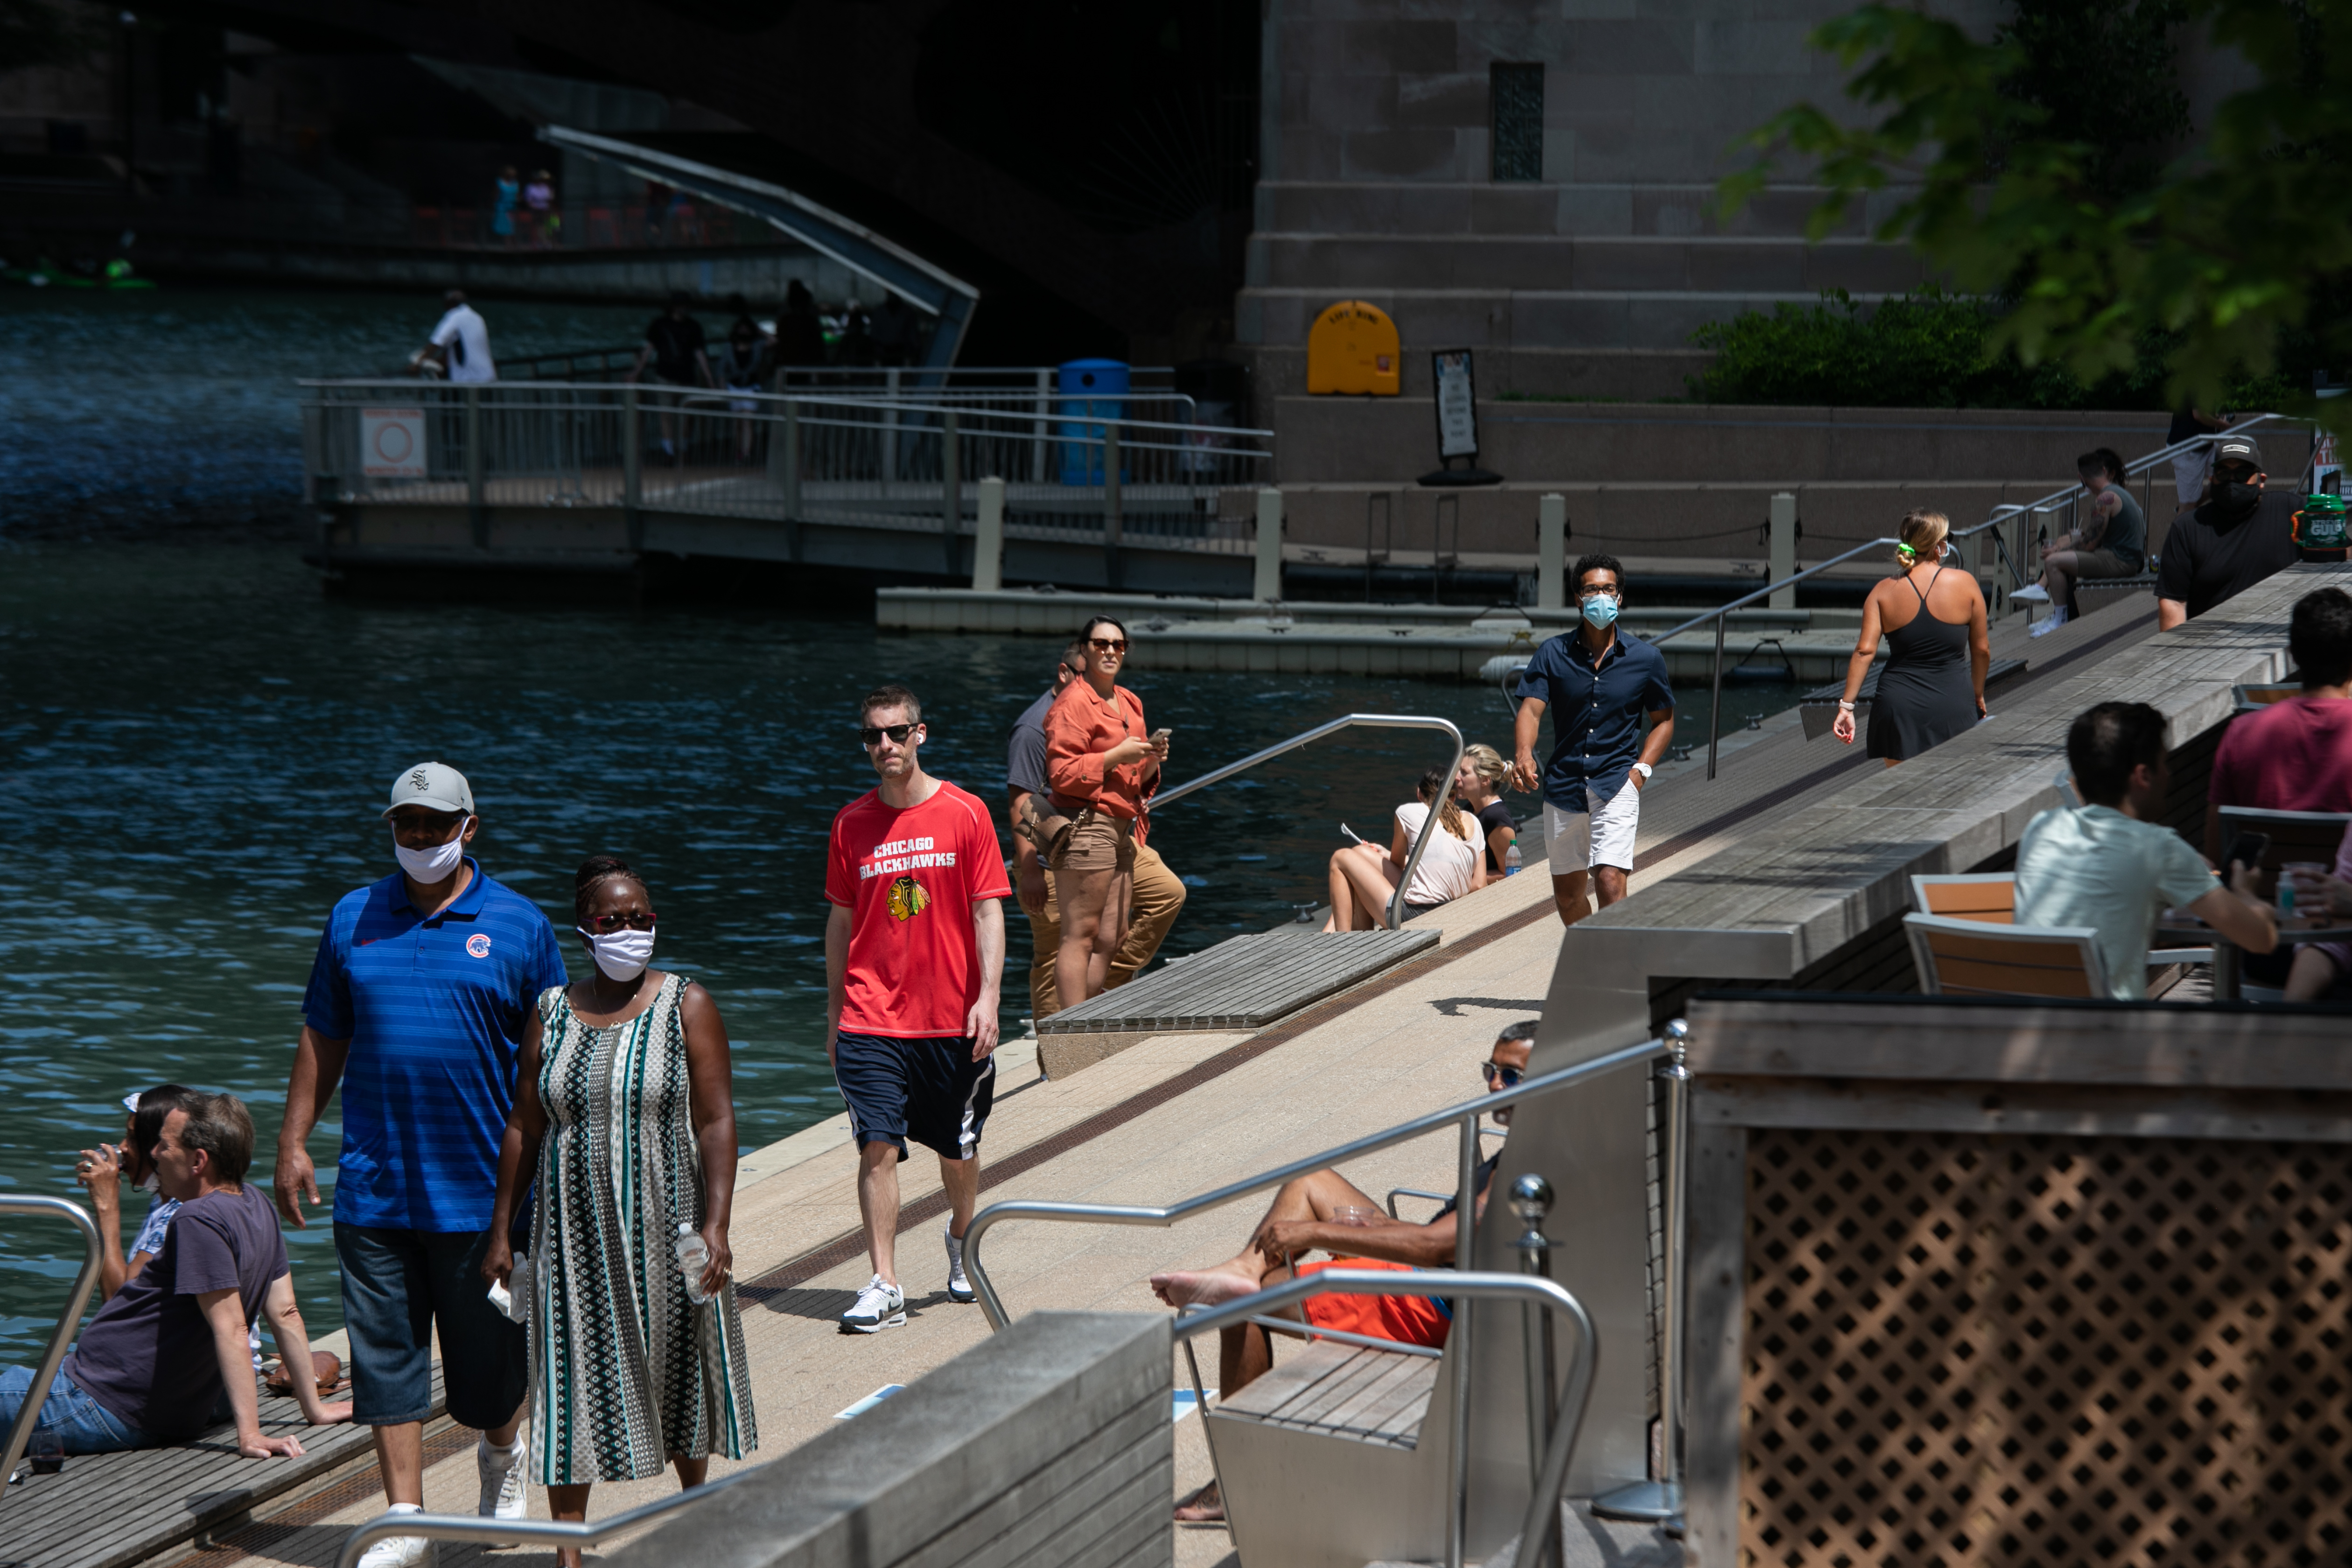 People take a stroll along the Riverwalk Friday afternoon, July 10, 2020. The Riverwalk is now open from 6 a.m. to 11 p.m. When the Riverwalk re-opened in June, hours were limited to prevent crowding and the spread of COVID-19.   Pat Nabong/Sun-Times